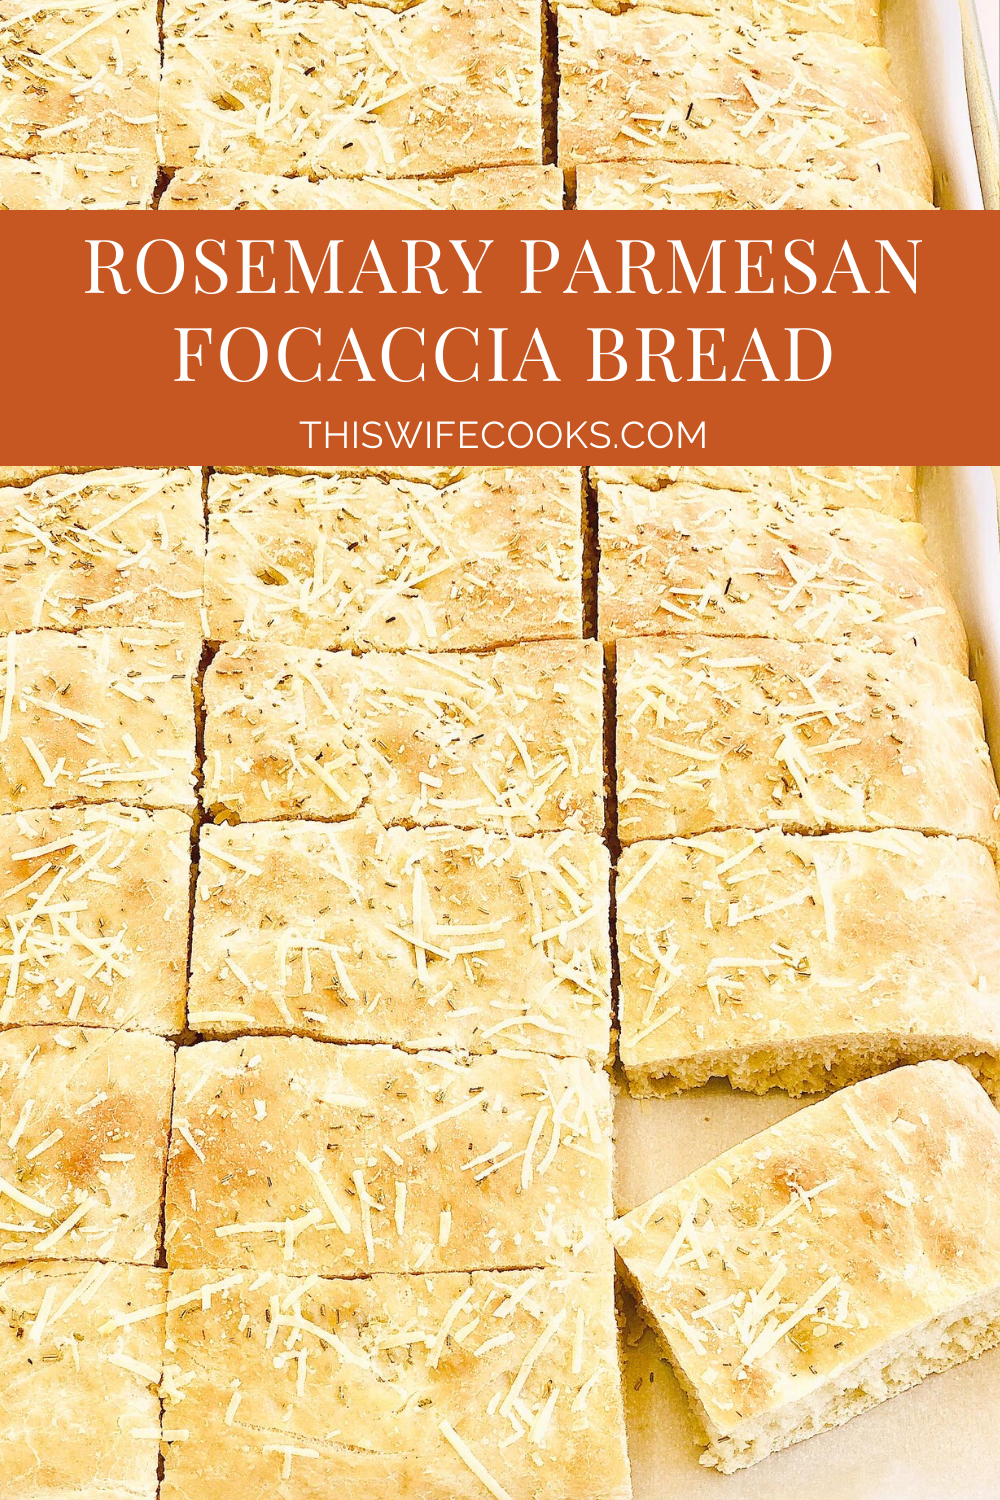 Rosemary Parmesan Focaccia Bread - Simple and super easy to make, this versatile flatbread pairs perfectly with all kinds of pasta dishes, soups, and salads. It's also delicious as sandwich bread! via @thiswifecooks